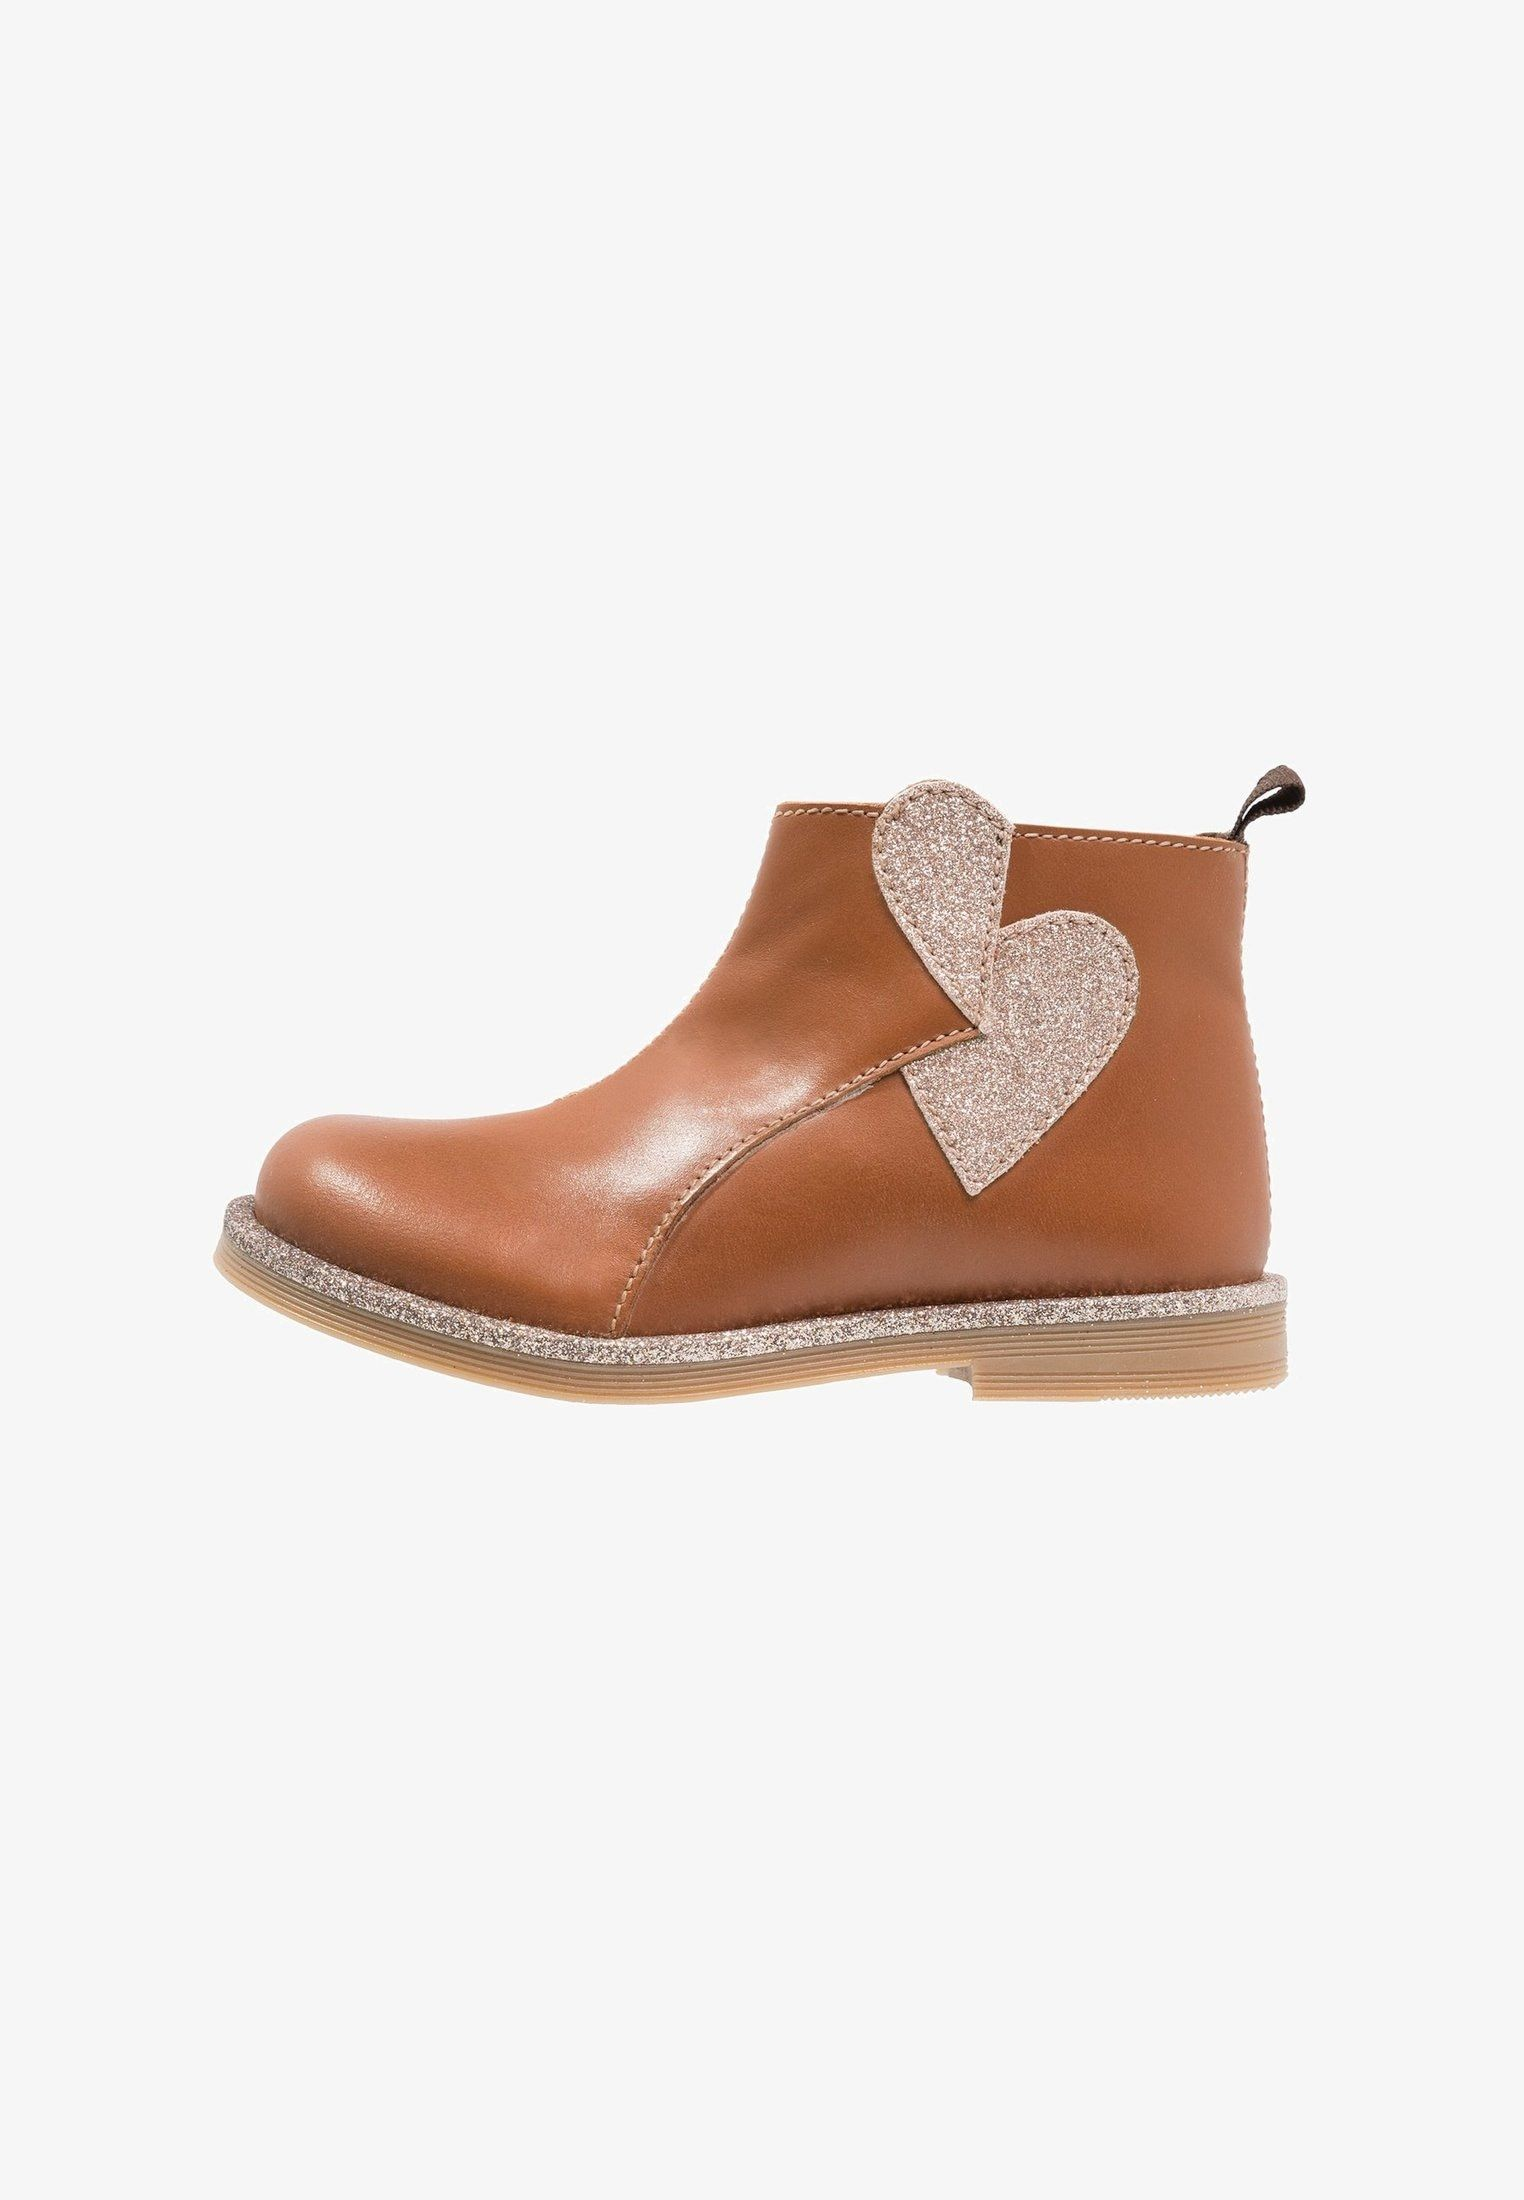 low priced 325e2 44fd1 Classic ankle boots - brown @ Zalando.co.uk 🛒 | Girls ...